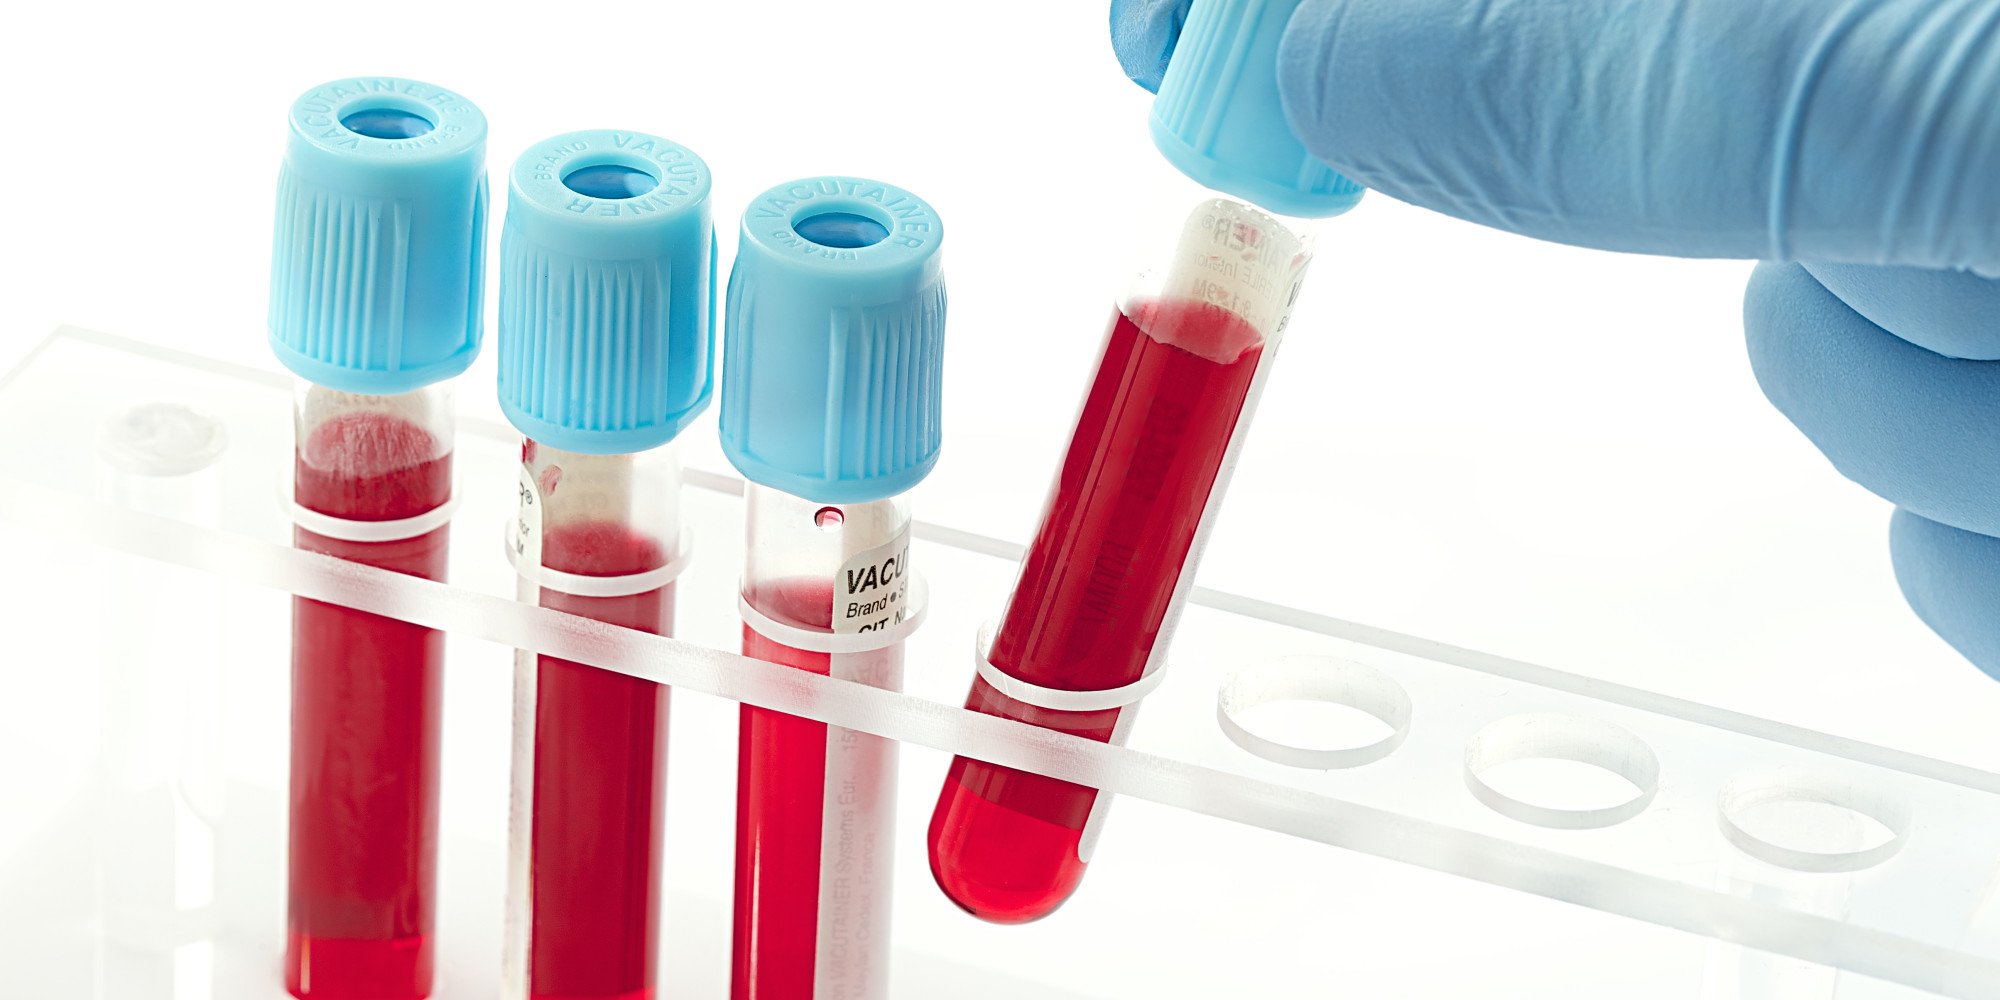 Blood Test That Allegedly Predicts Suicide Risk Only Looks Promising In The Media Not In